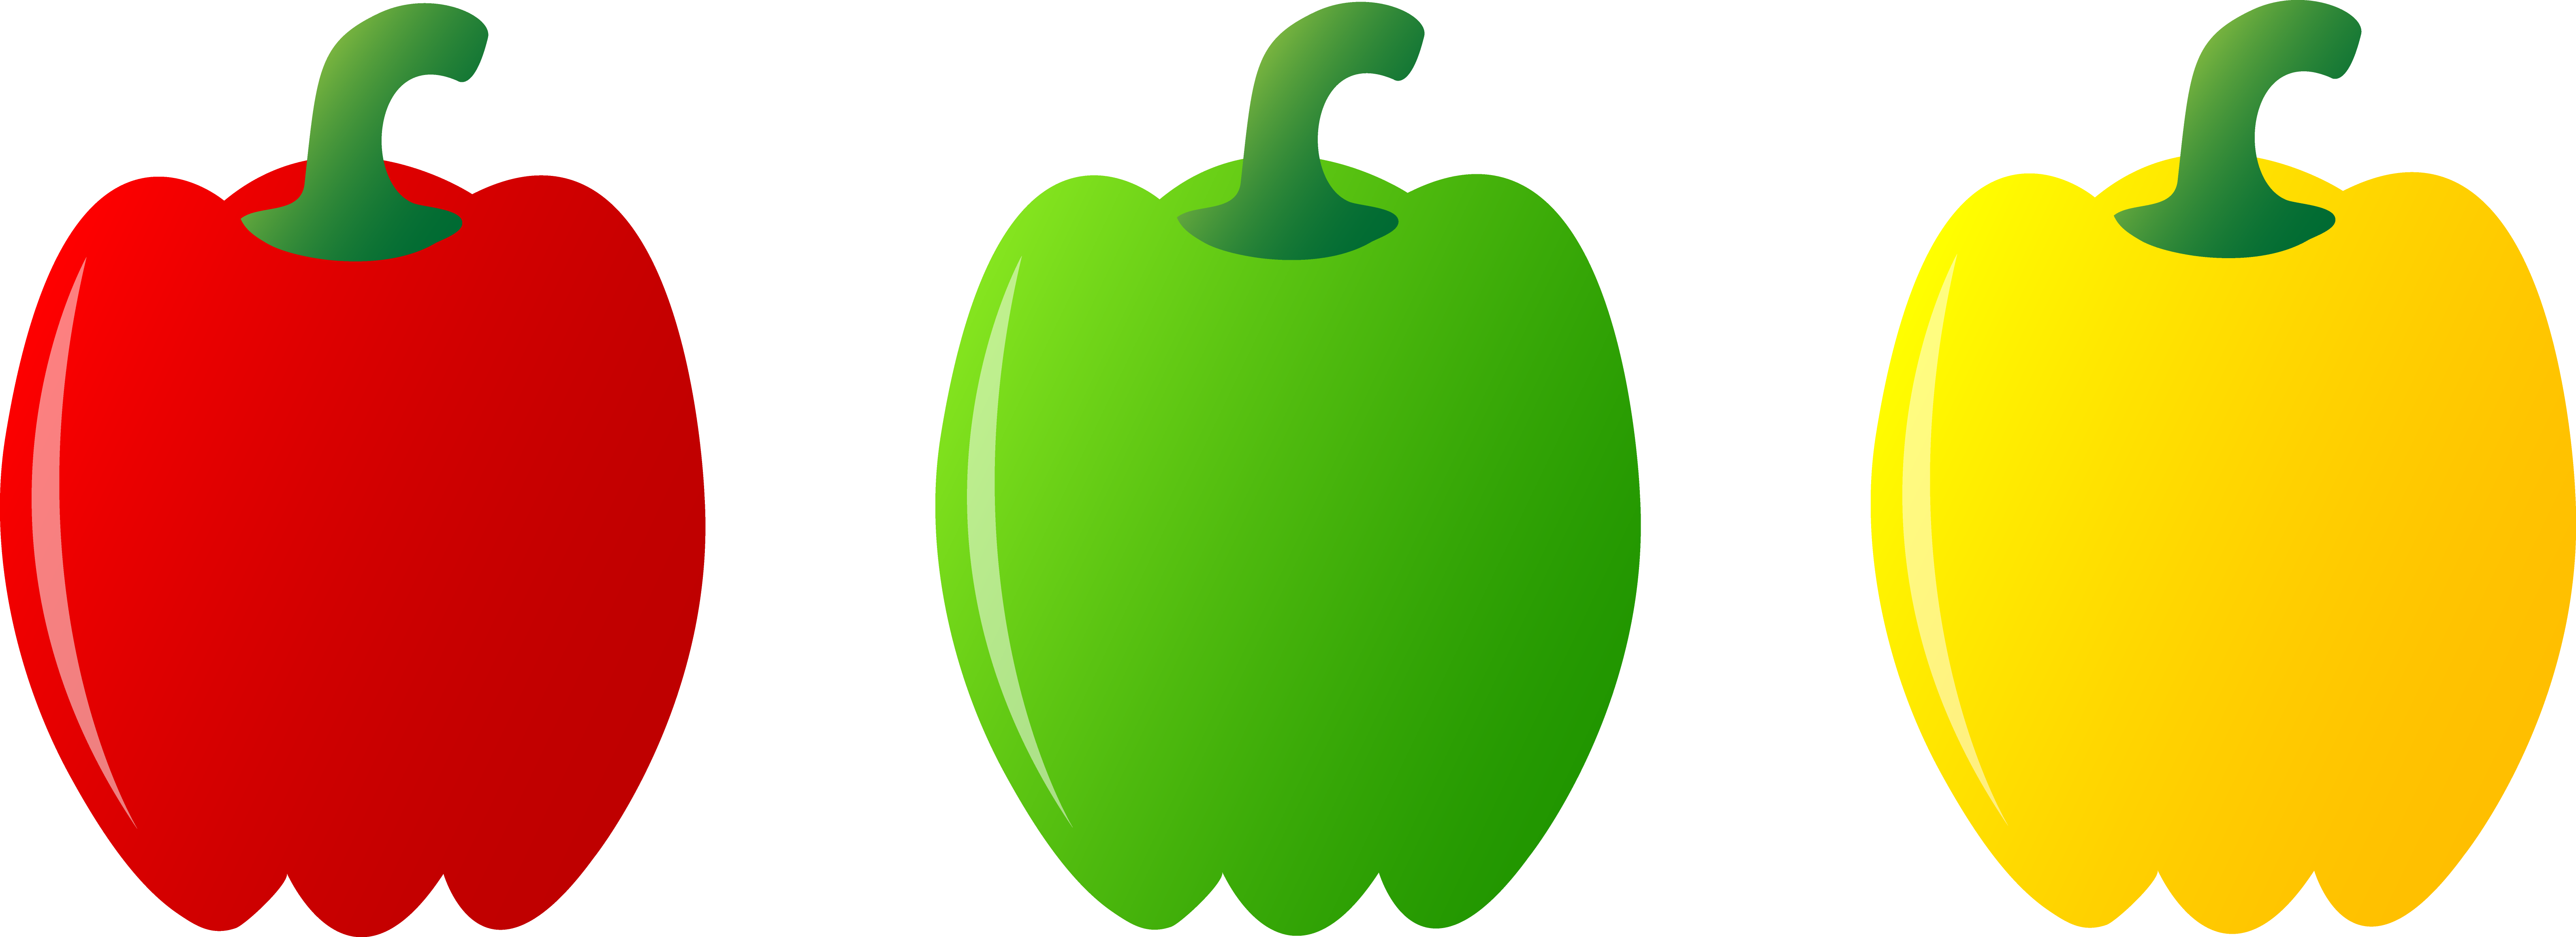 Exclusive ideas pepper three. Peppers clipart animated clip